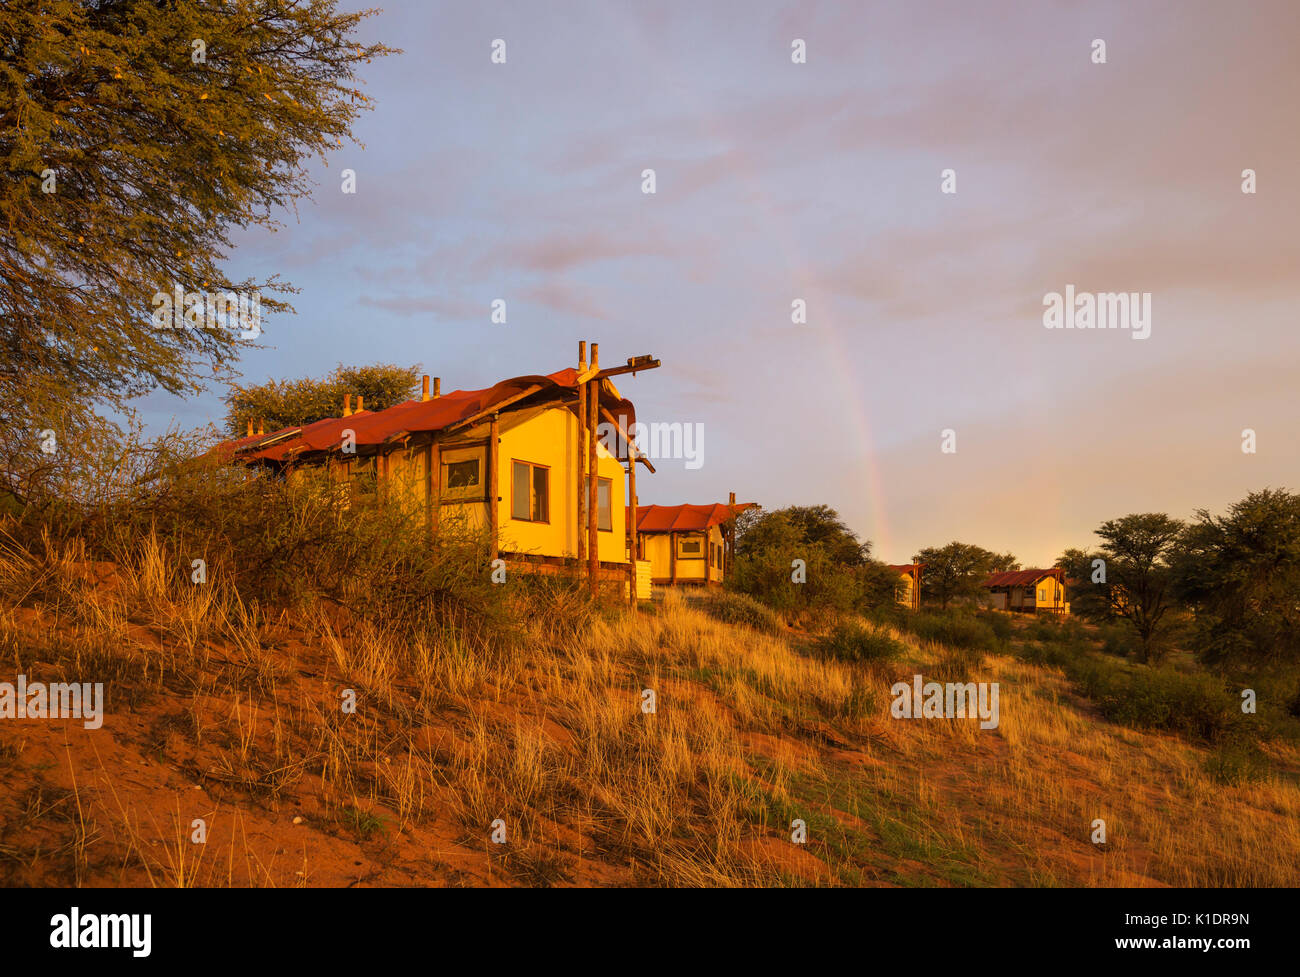 Stilt canvas tents of the Kalahari Tented C& at ridge of sand dune evening light with rainbow rainy season Kalahari Desert & Stilt canvas tents of the Kalahari Tented Camp at ridge of sand ...